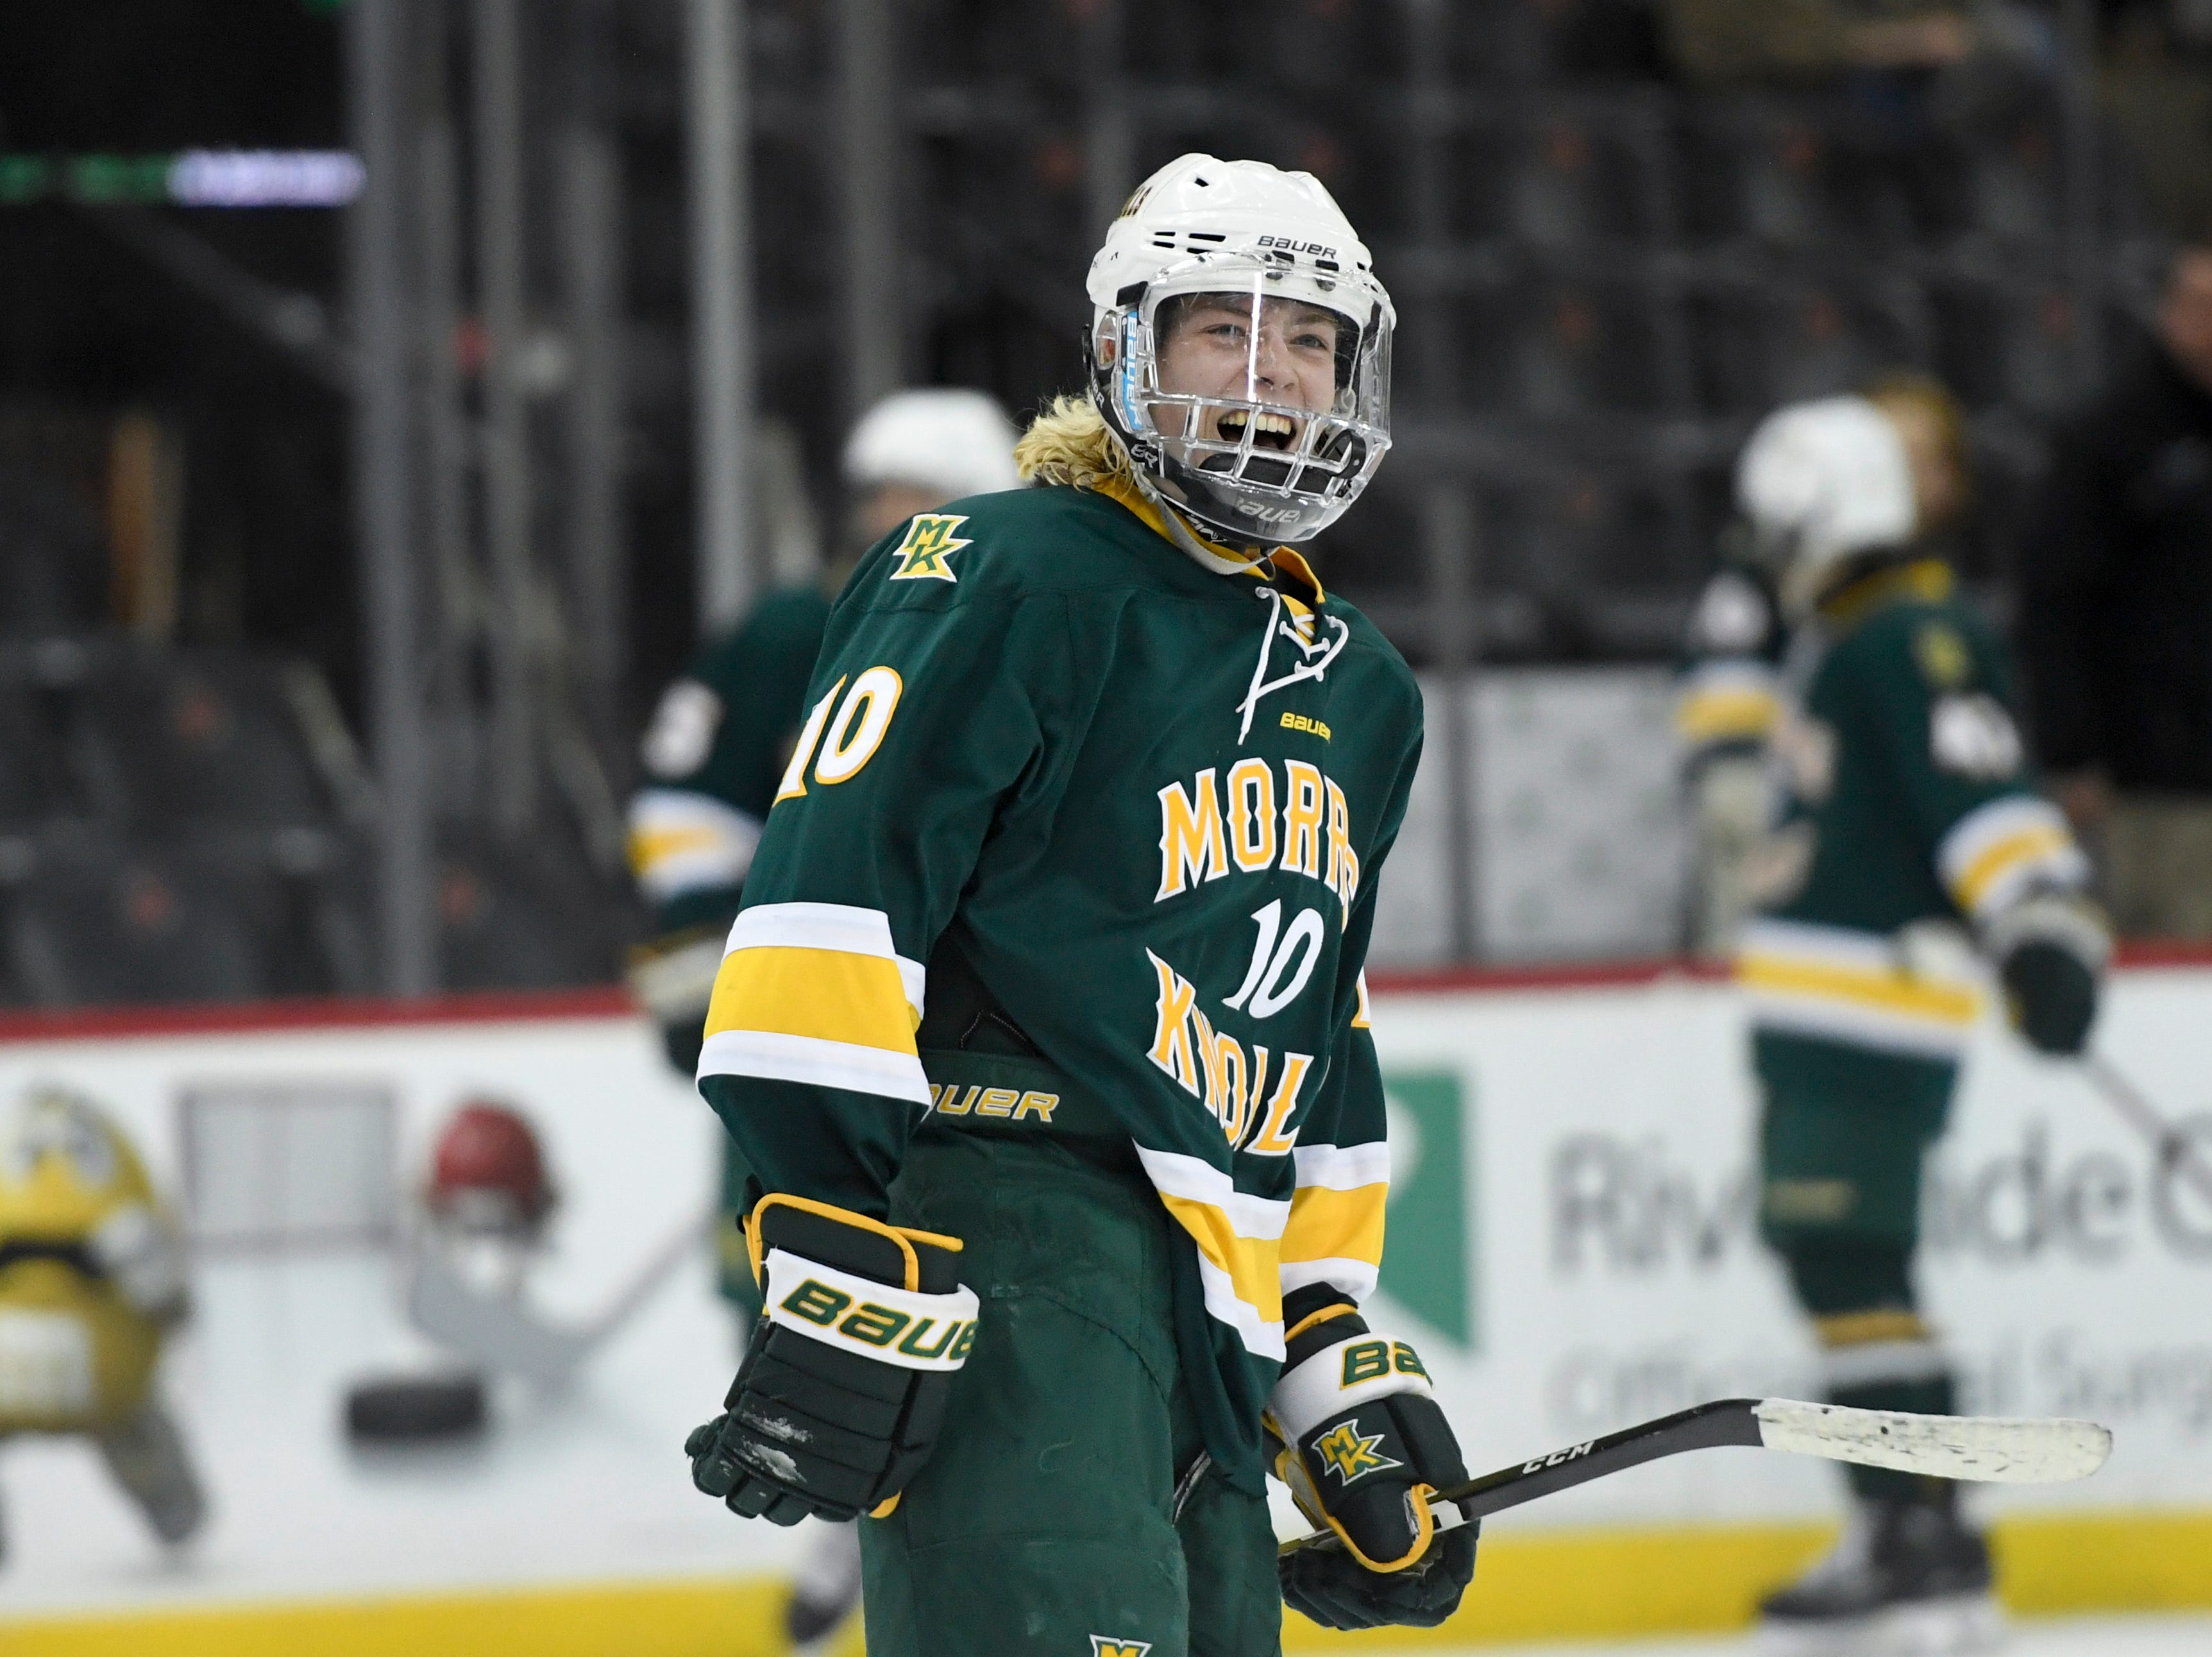 Morris Knolls/Hills' Sean Murray (10) smiles towards the student section after a goal in the third period. Morris Knolls/Hills defeats Hillsborough 6-1 in the Public A ice hockey final at the Prudential Center on Monday, March 4, 2019, in Newark.